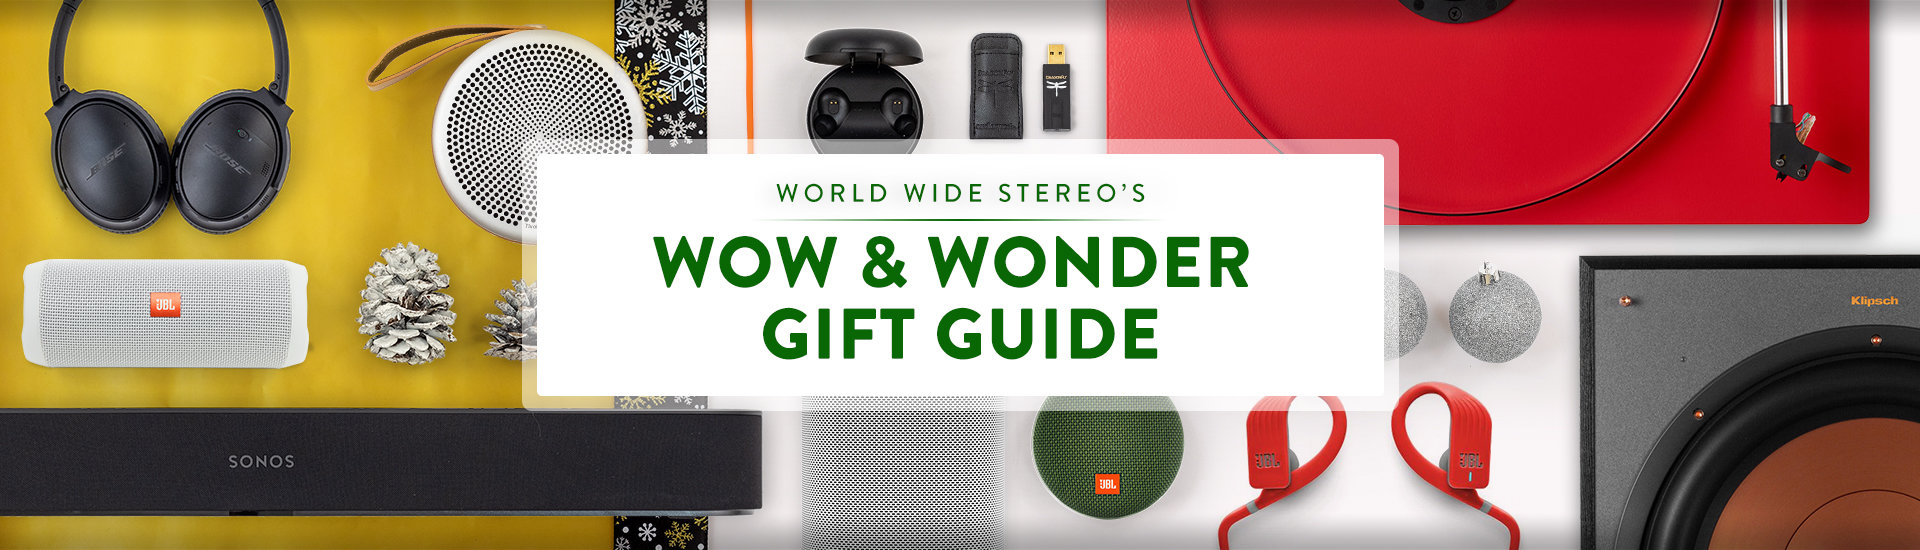 World Wide Stereo's Wow and Wonder Gift Guide